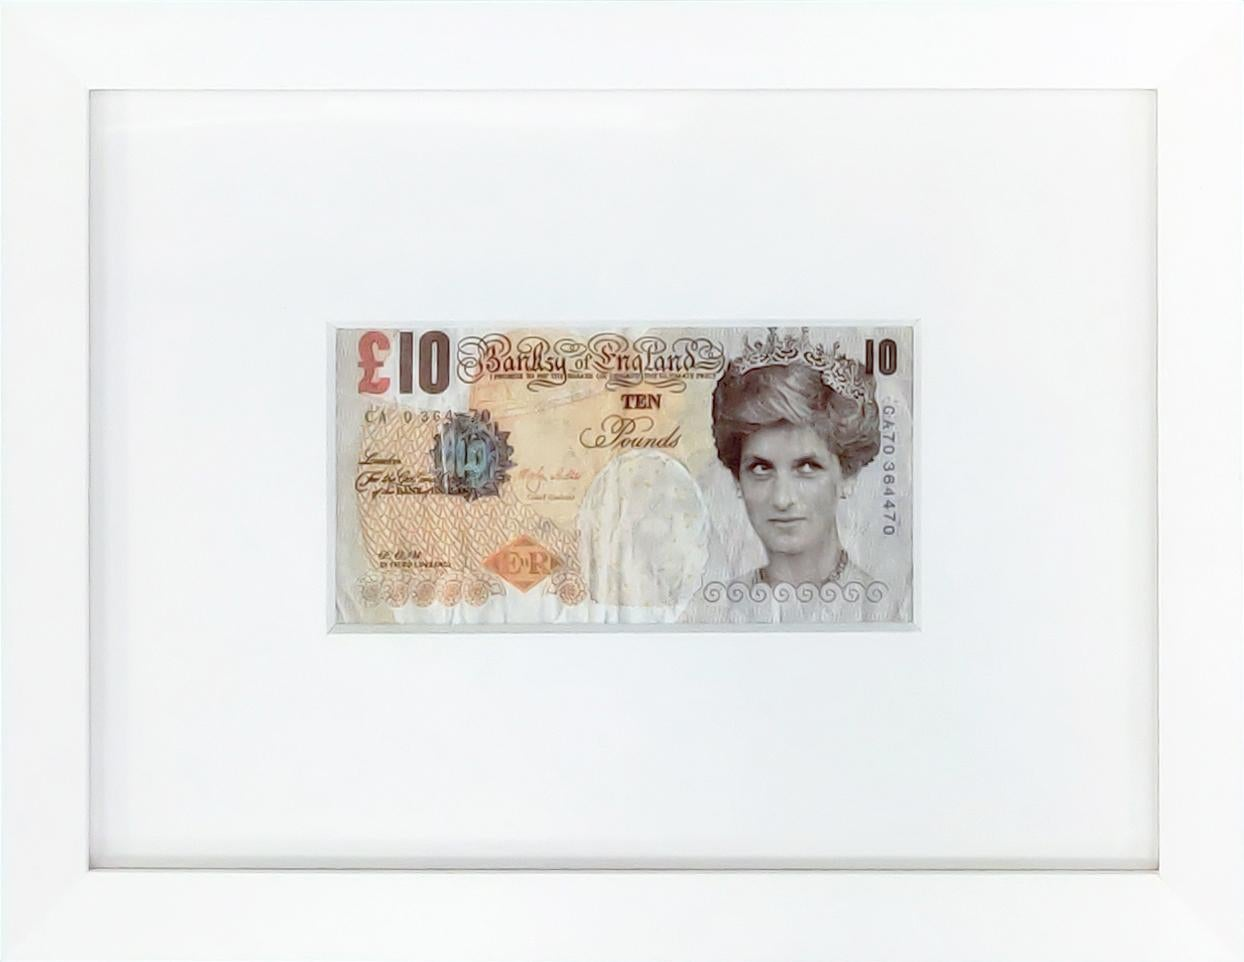 DI-FACED TENNER (10 GBP NOTE)